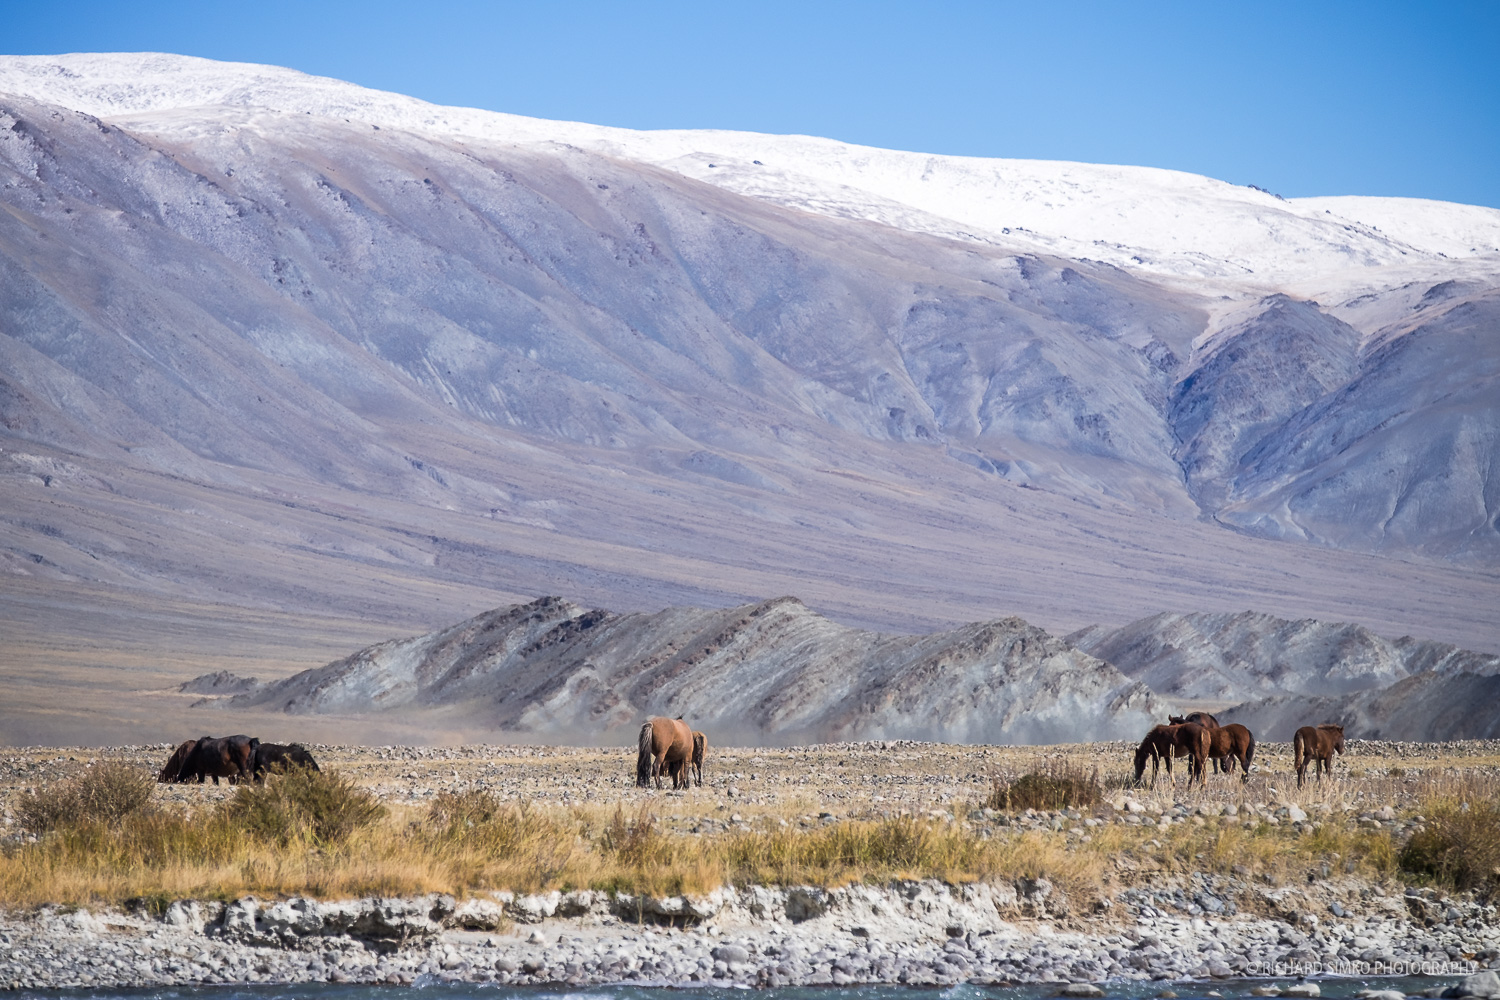 Vistas in Mongolia are beautiful, vast and roll of live stock like sheeps, goats, camels, cows or horses